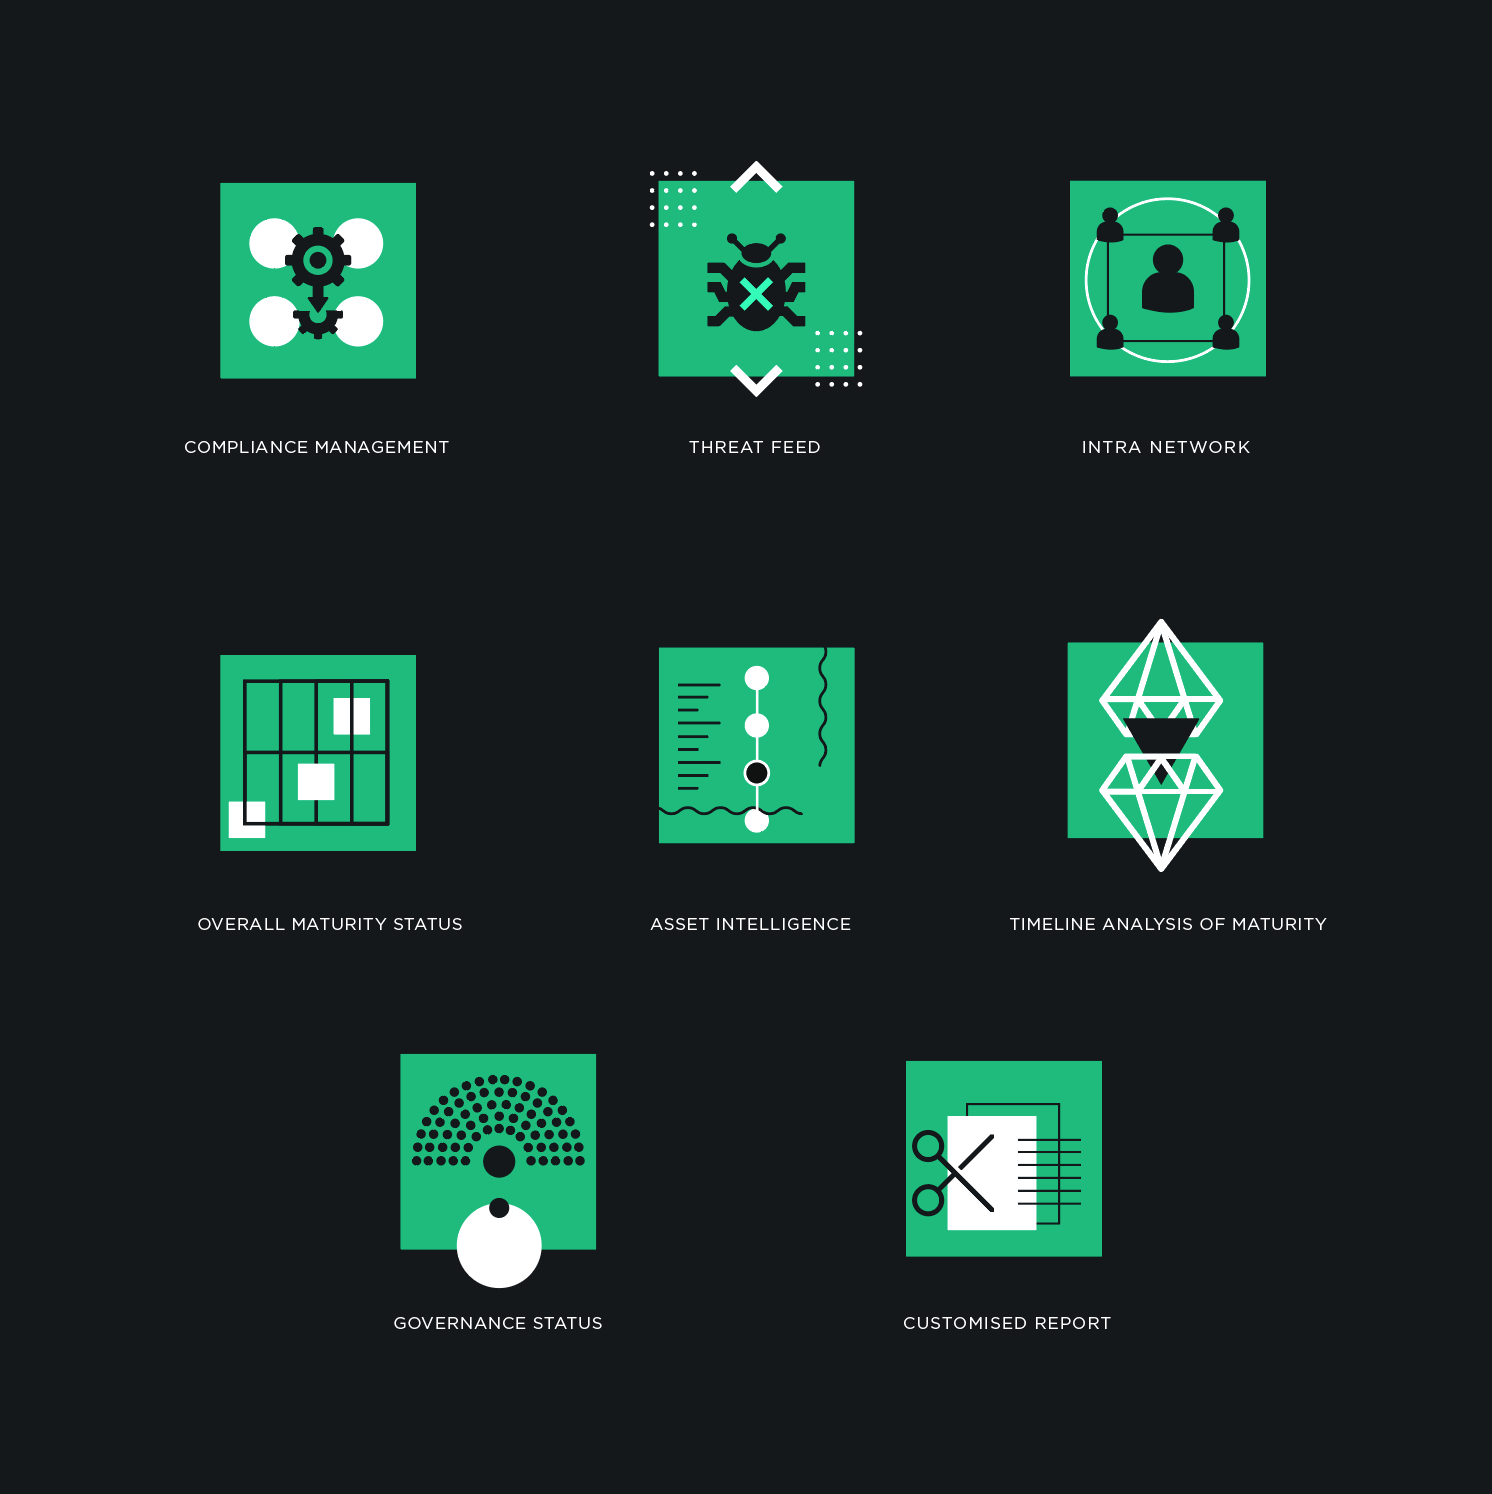 Pin by Ryan McL on Service/Icon/Illustrations (With images